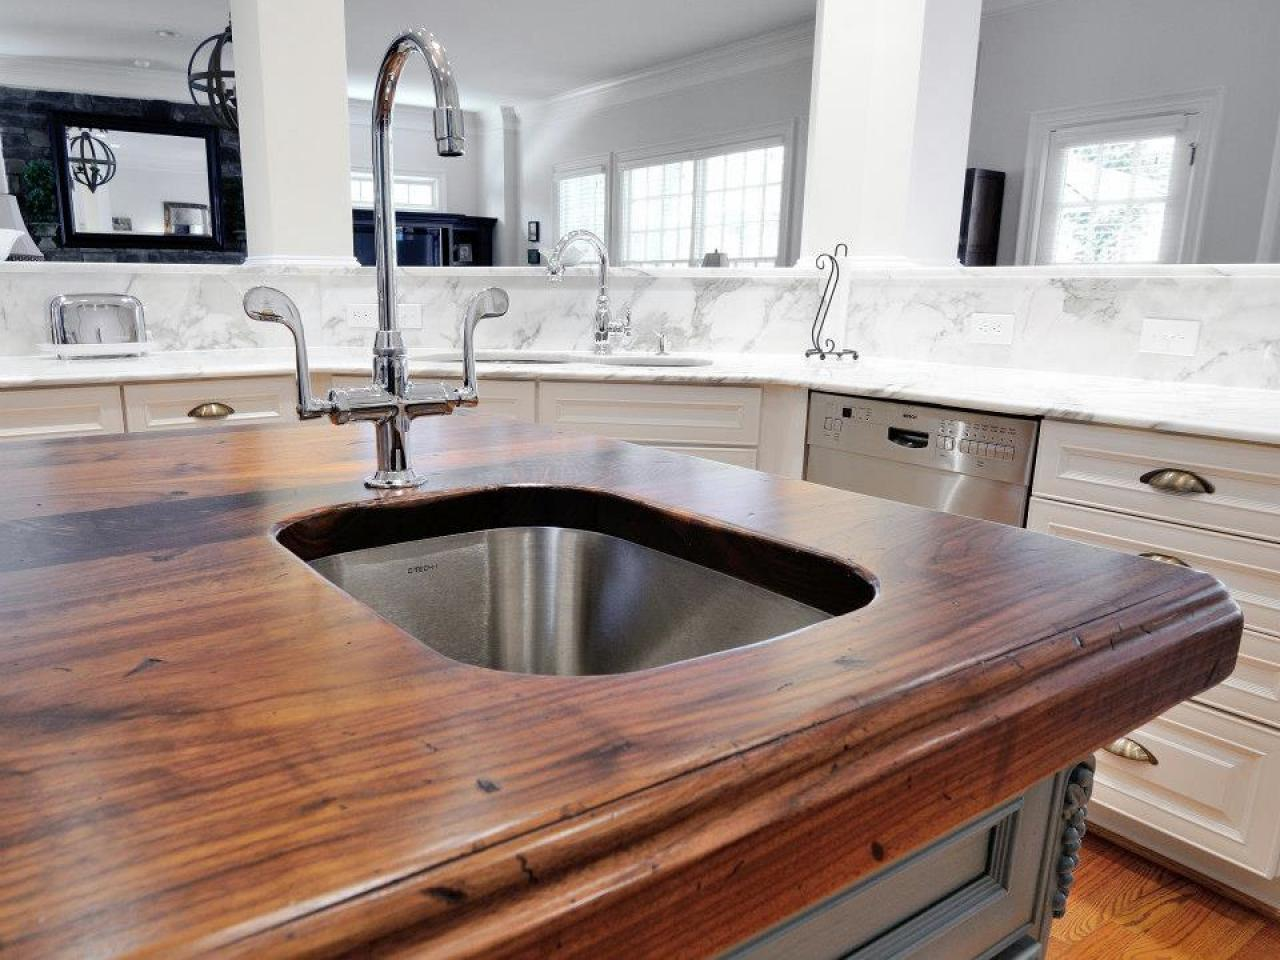 Bathroom Countertop Surface Options : Best Kitchen Countertops: Pictures & Ideas From HGTV Kitchen Ideas ...